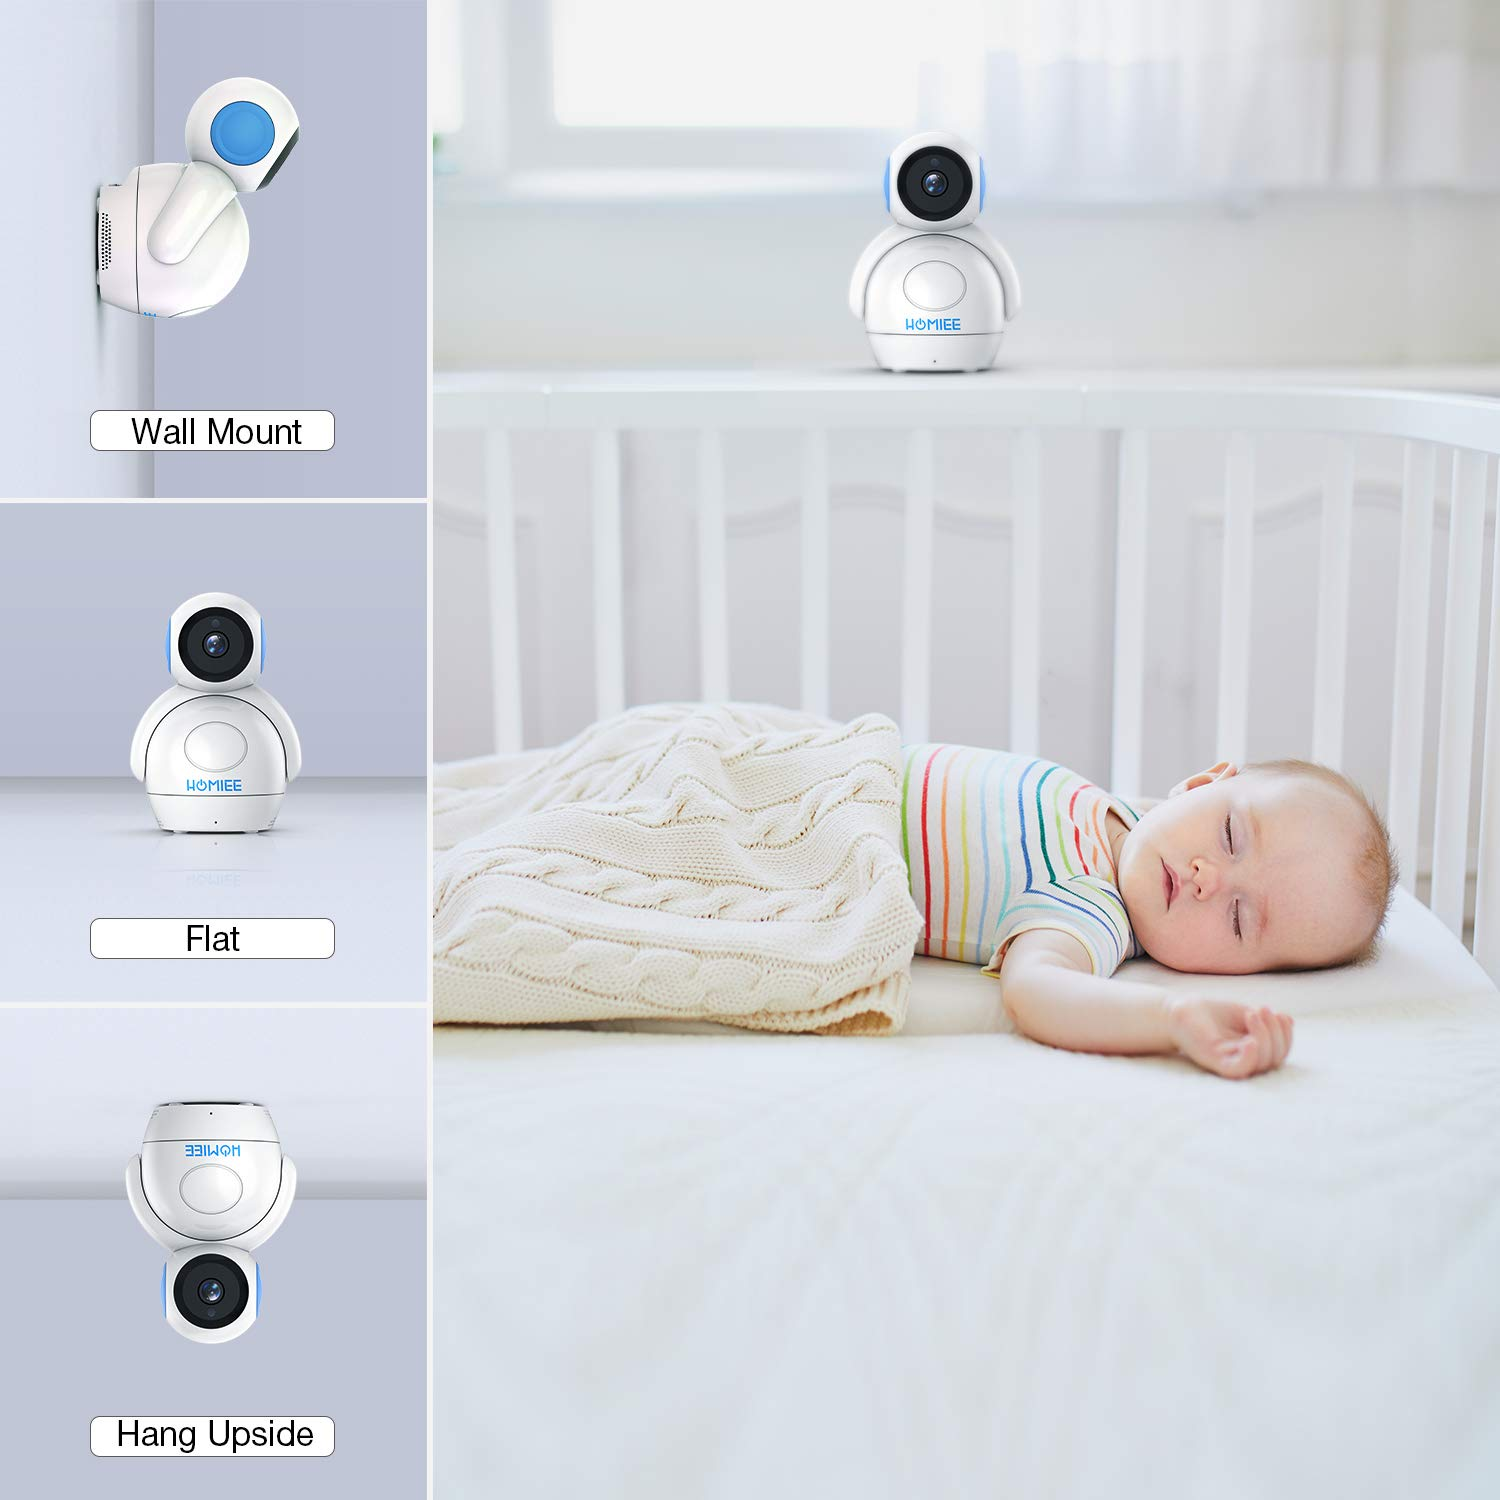 Night Vision with 1000ft Range HOMIEE 720P Digital Robot Appearance Camera Exclusive for HOMIEE Baby Monitor Additional Camera Sound /& Temperature Alert Two Way Audio and Baby Lullabies